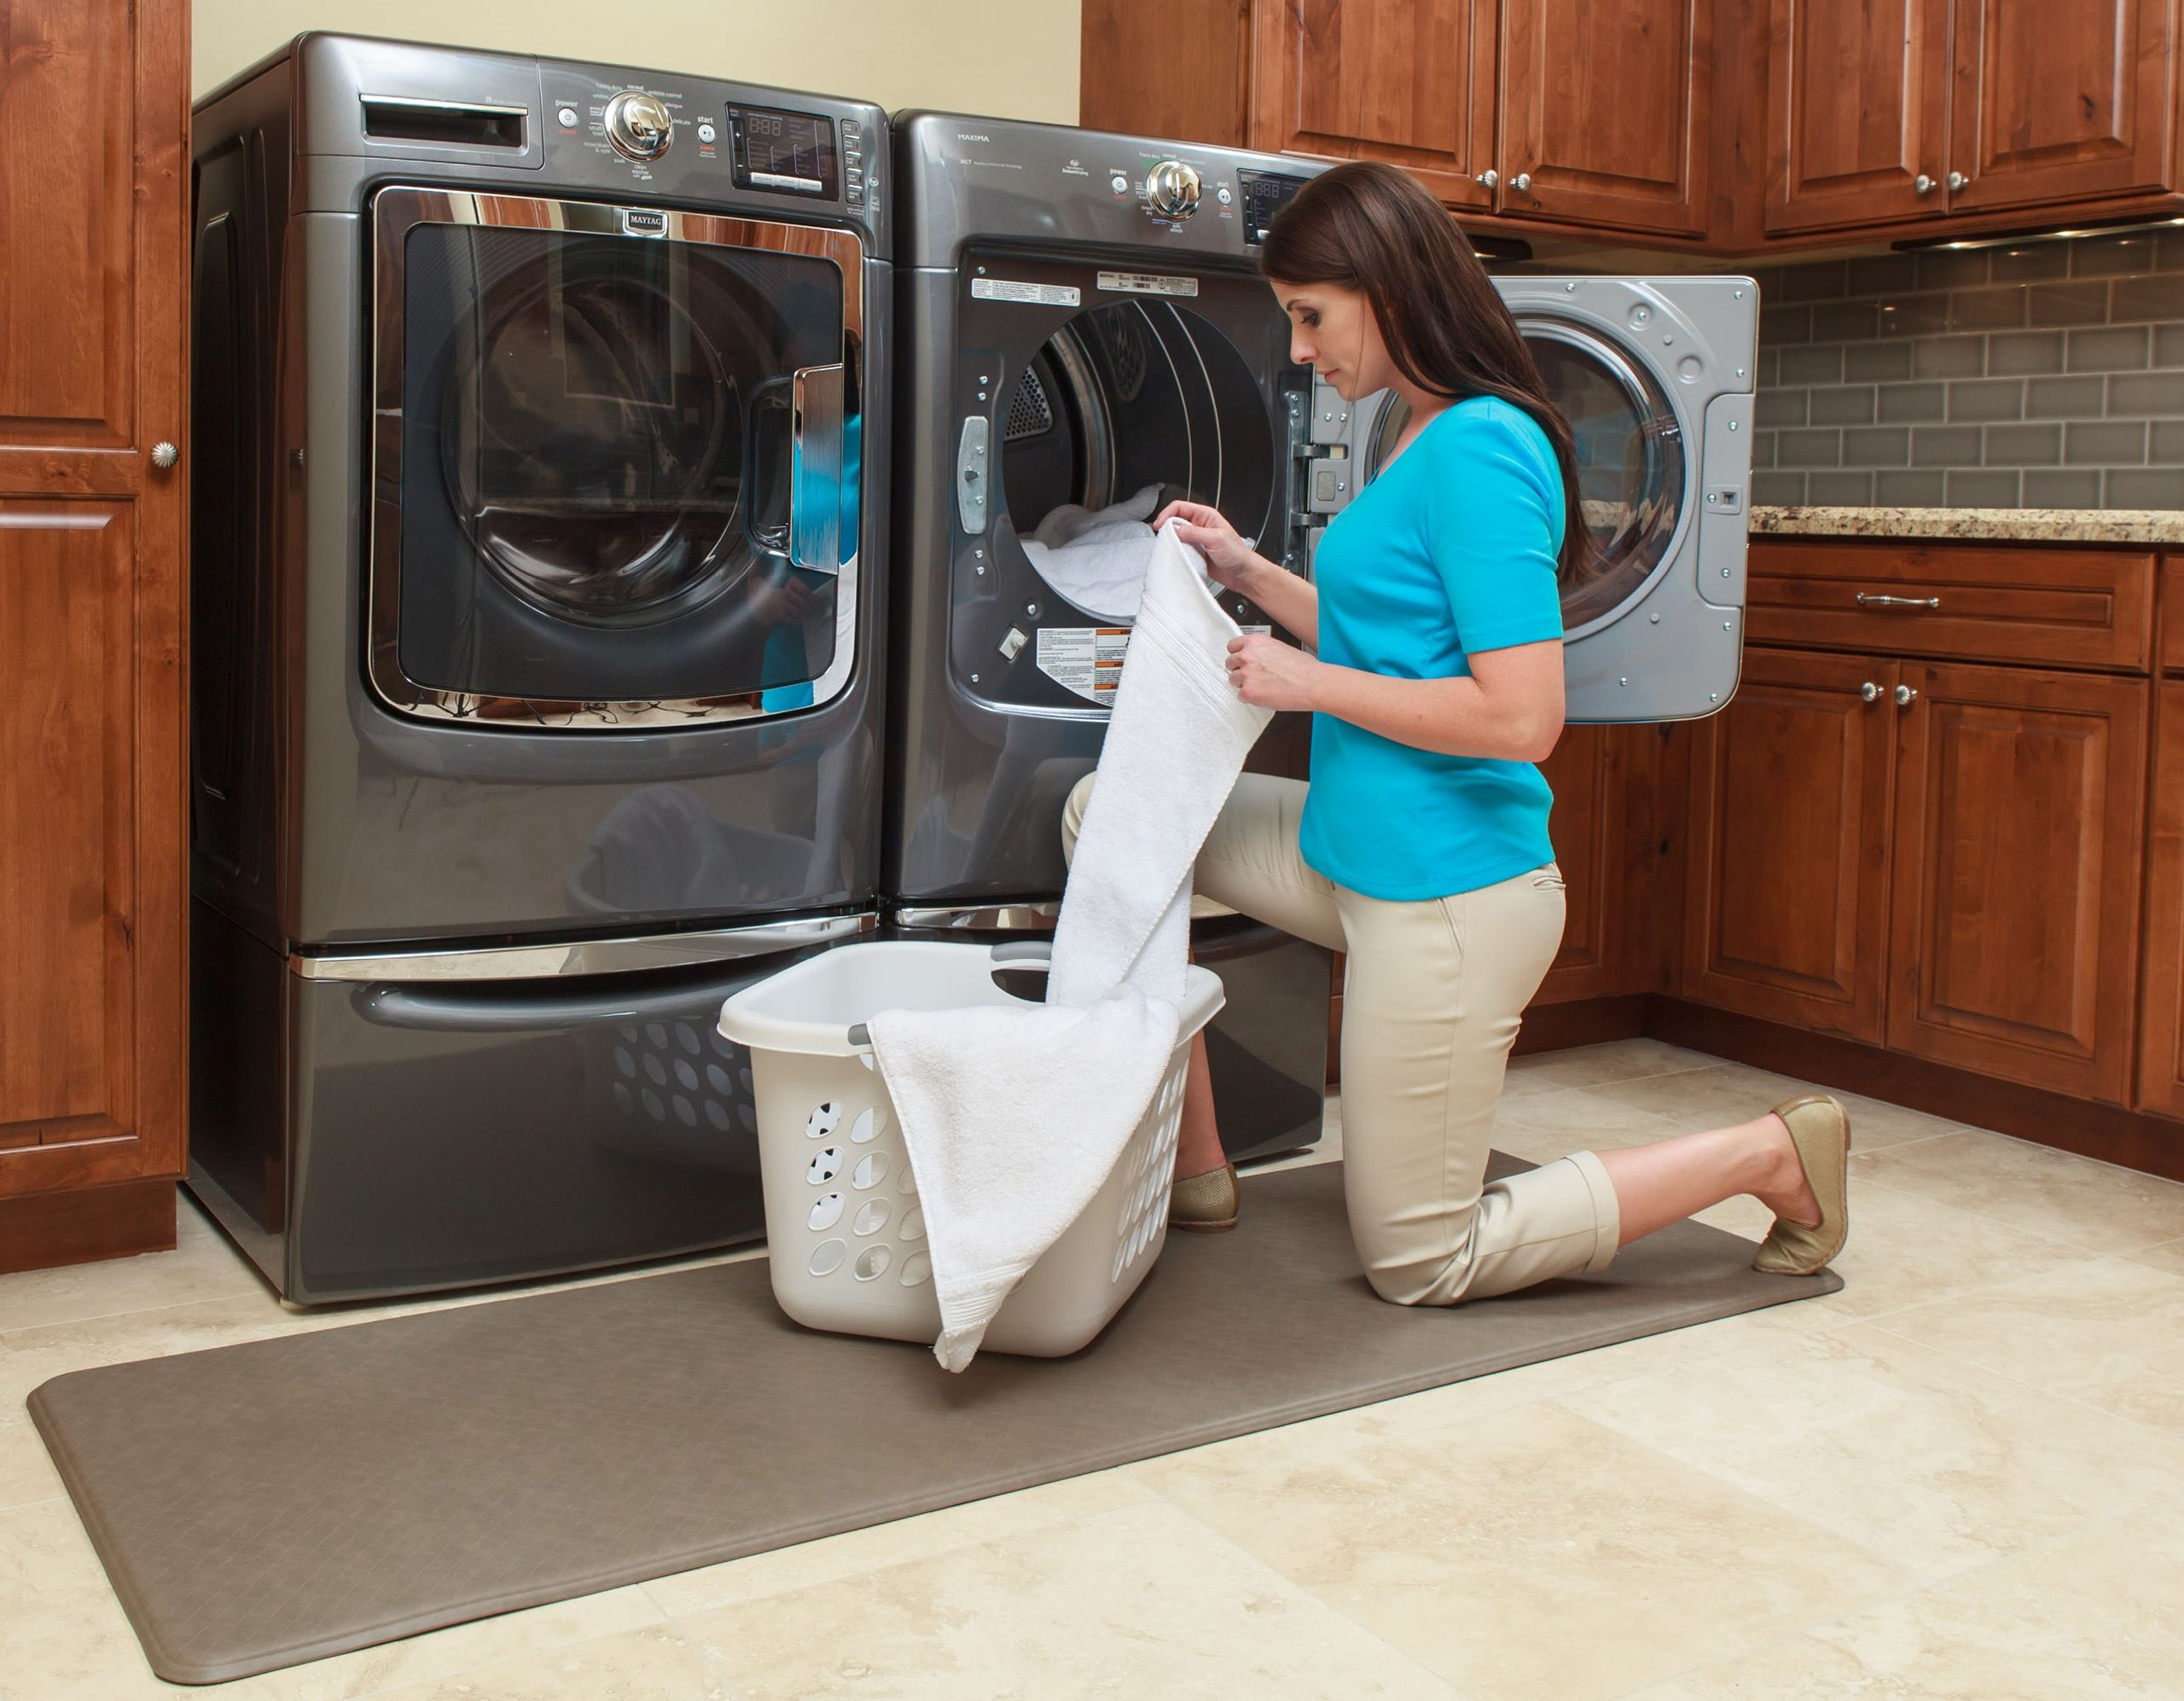 Imprint Cumulus9 Kitchen Mat Nantucket Series Island Area Runner  26 in. x 72 in. x 5/8 in. Mocha by Imprint (Image #6)